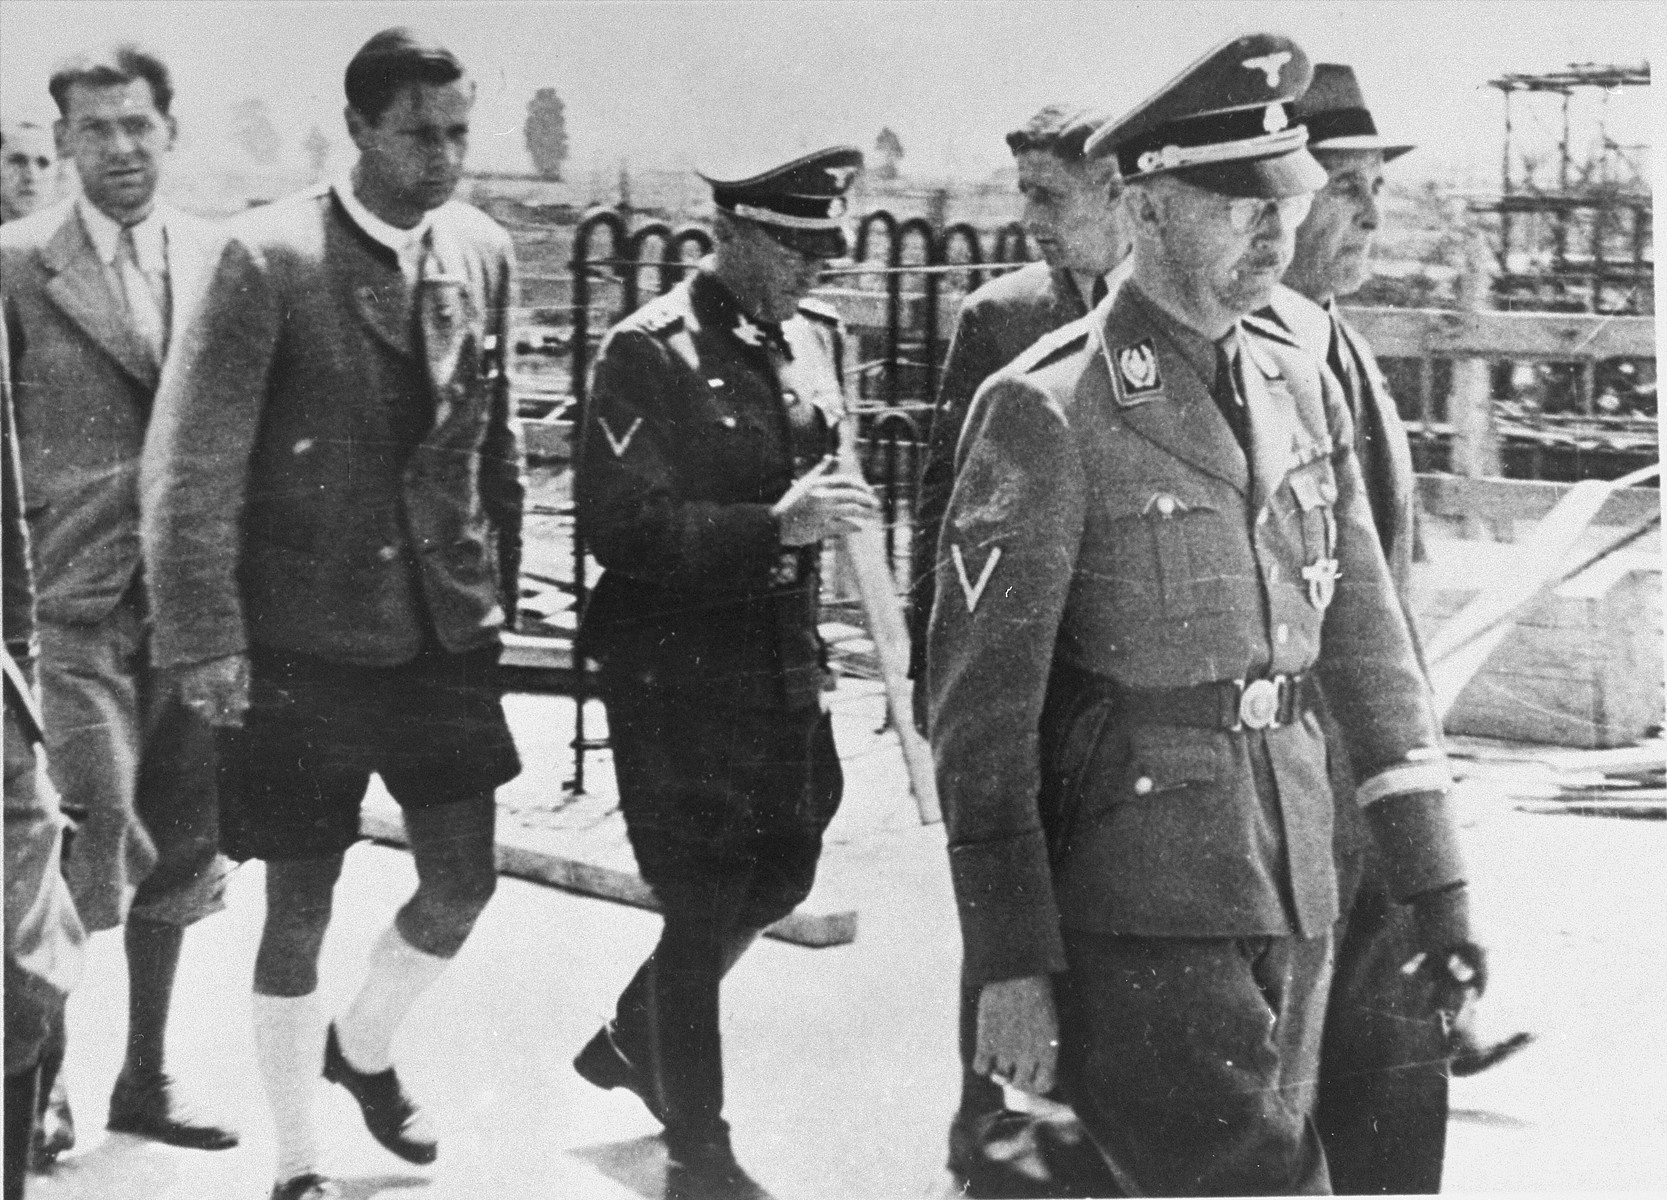 Reichsfuehrer SS Heinrich Himmler tours the Monowitz-Buna building site in the company of Max Faust (far right, next to Himmler).   Faust, who was an IG Farben engineer, was the head of building operations at Monowitz-Buna.  Pictured in the center is SS-Obergruppenfuehrer and General der Polizei in Breslau, Ernst Heinrich Schmauser